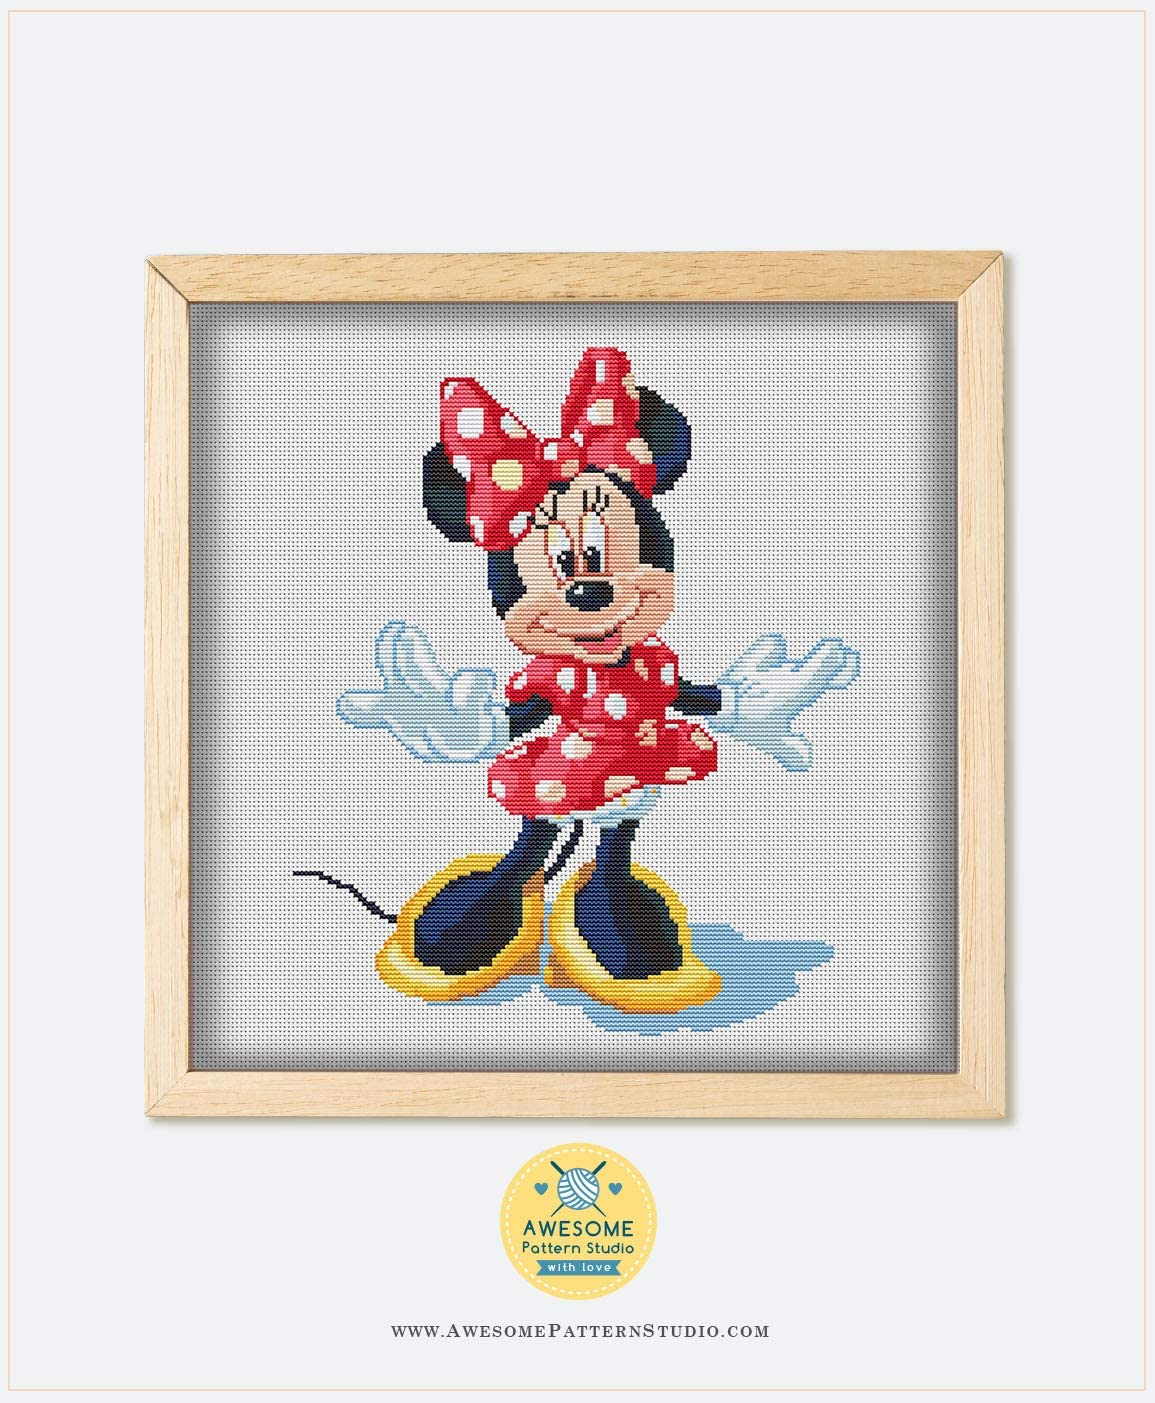 Embroidery Pattern Kit Fabrick and 4 Printed Color Schemes Inside Needles Threads Mickey and Minnie Mouse K725 Counted Cross Stitch KIT#2